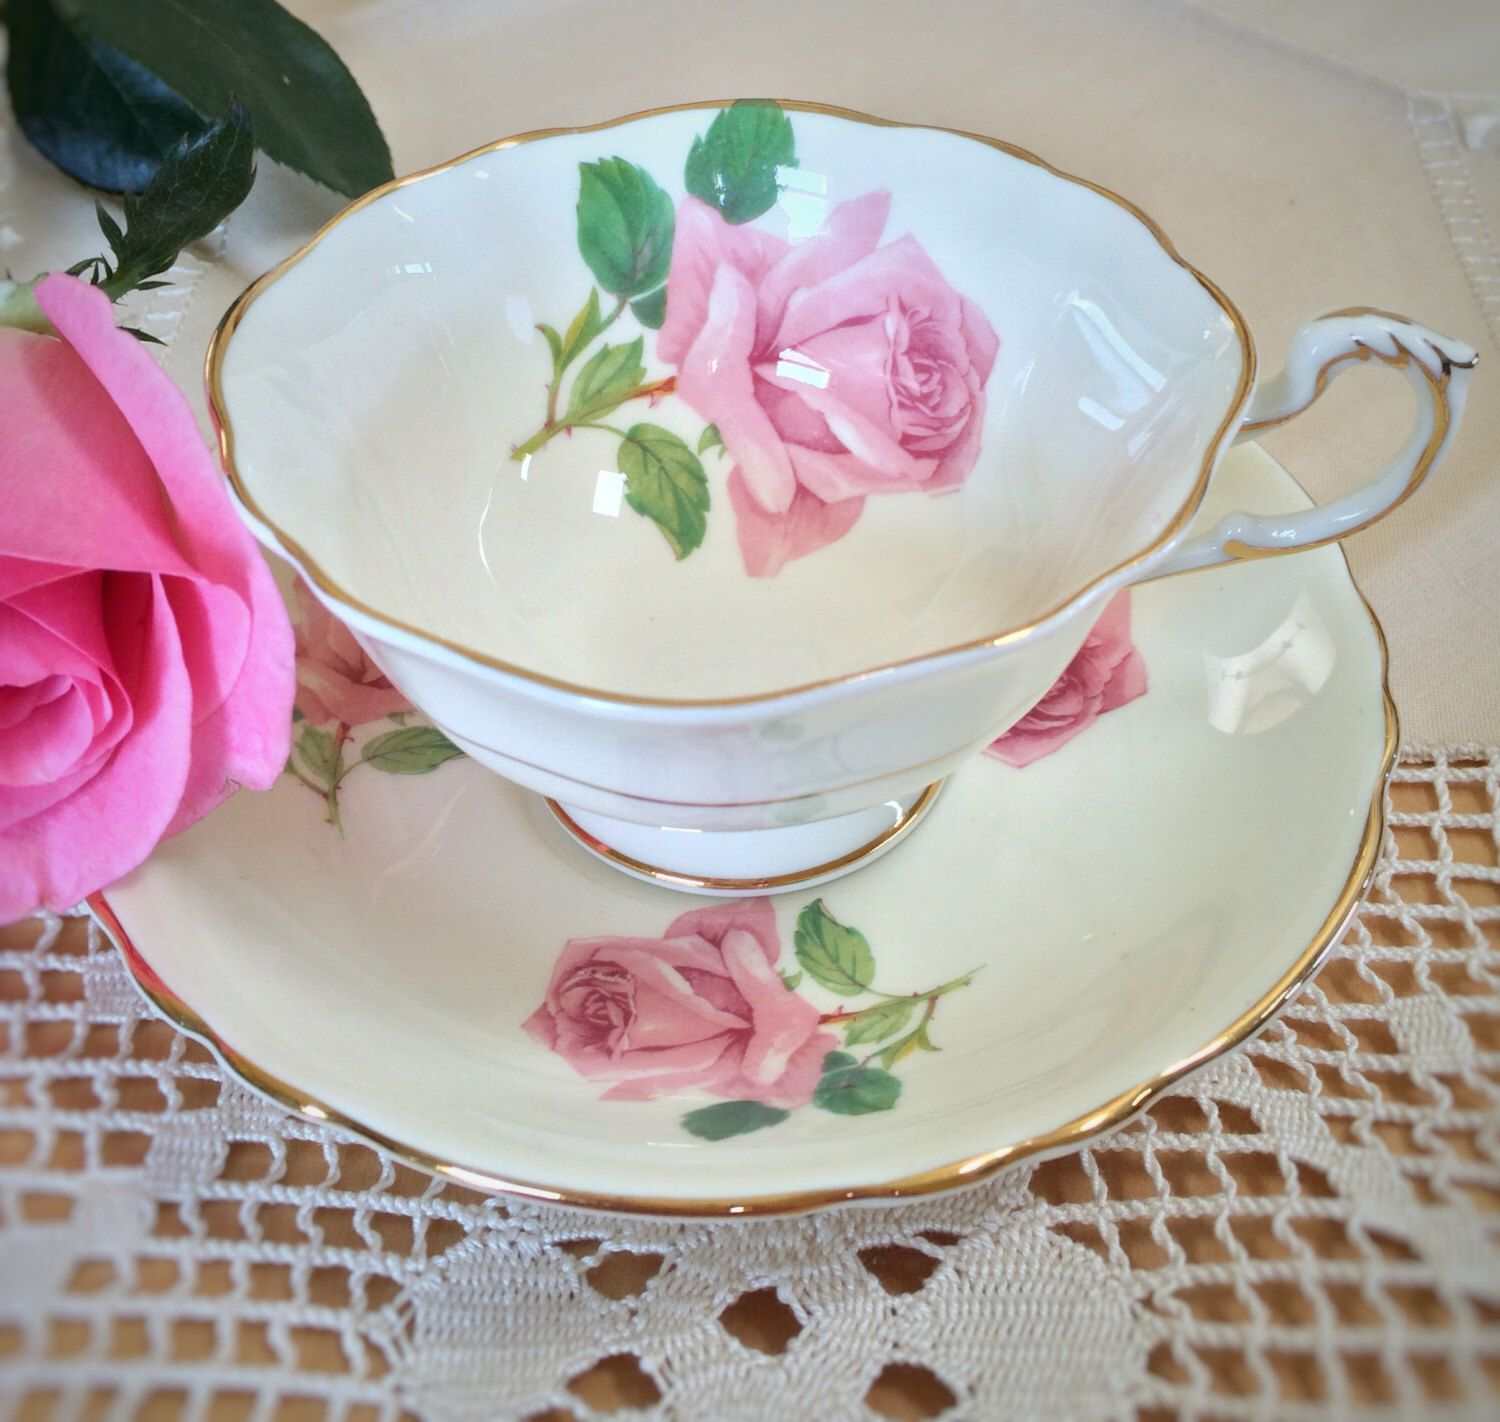 Royal albert bone china tea cup amp saucer winsome pattern ebay - Vintage Paragon Teacup And Saucer Gorgeous Ivory With Pink Cabbage Roses Bone China